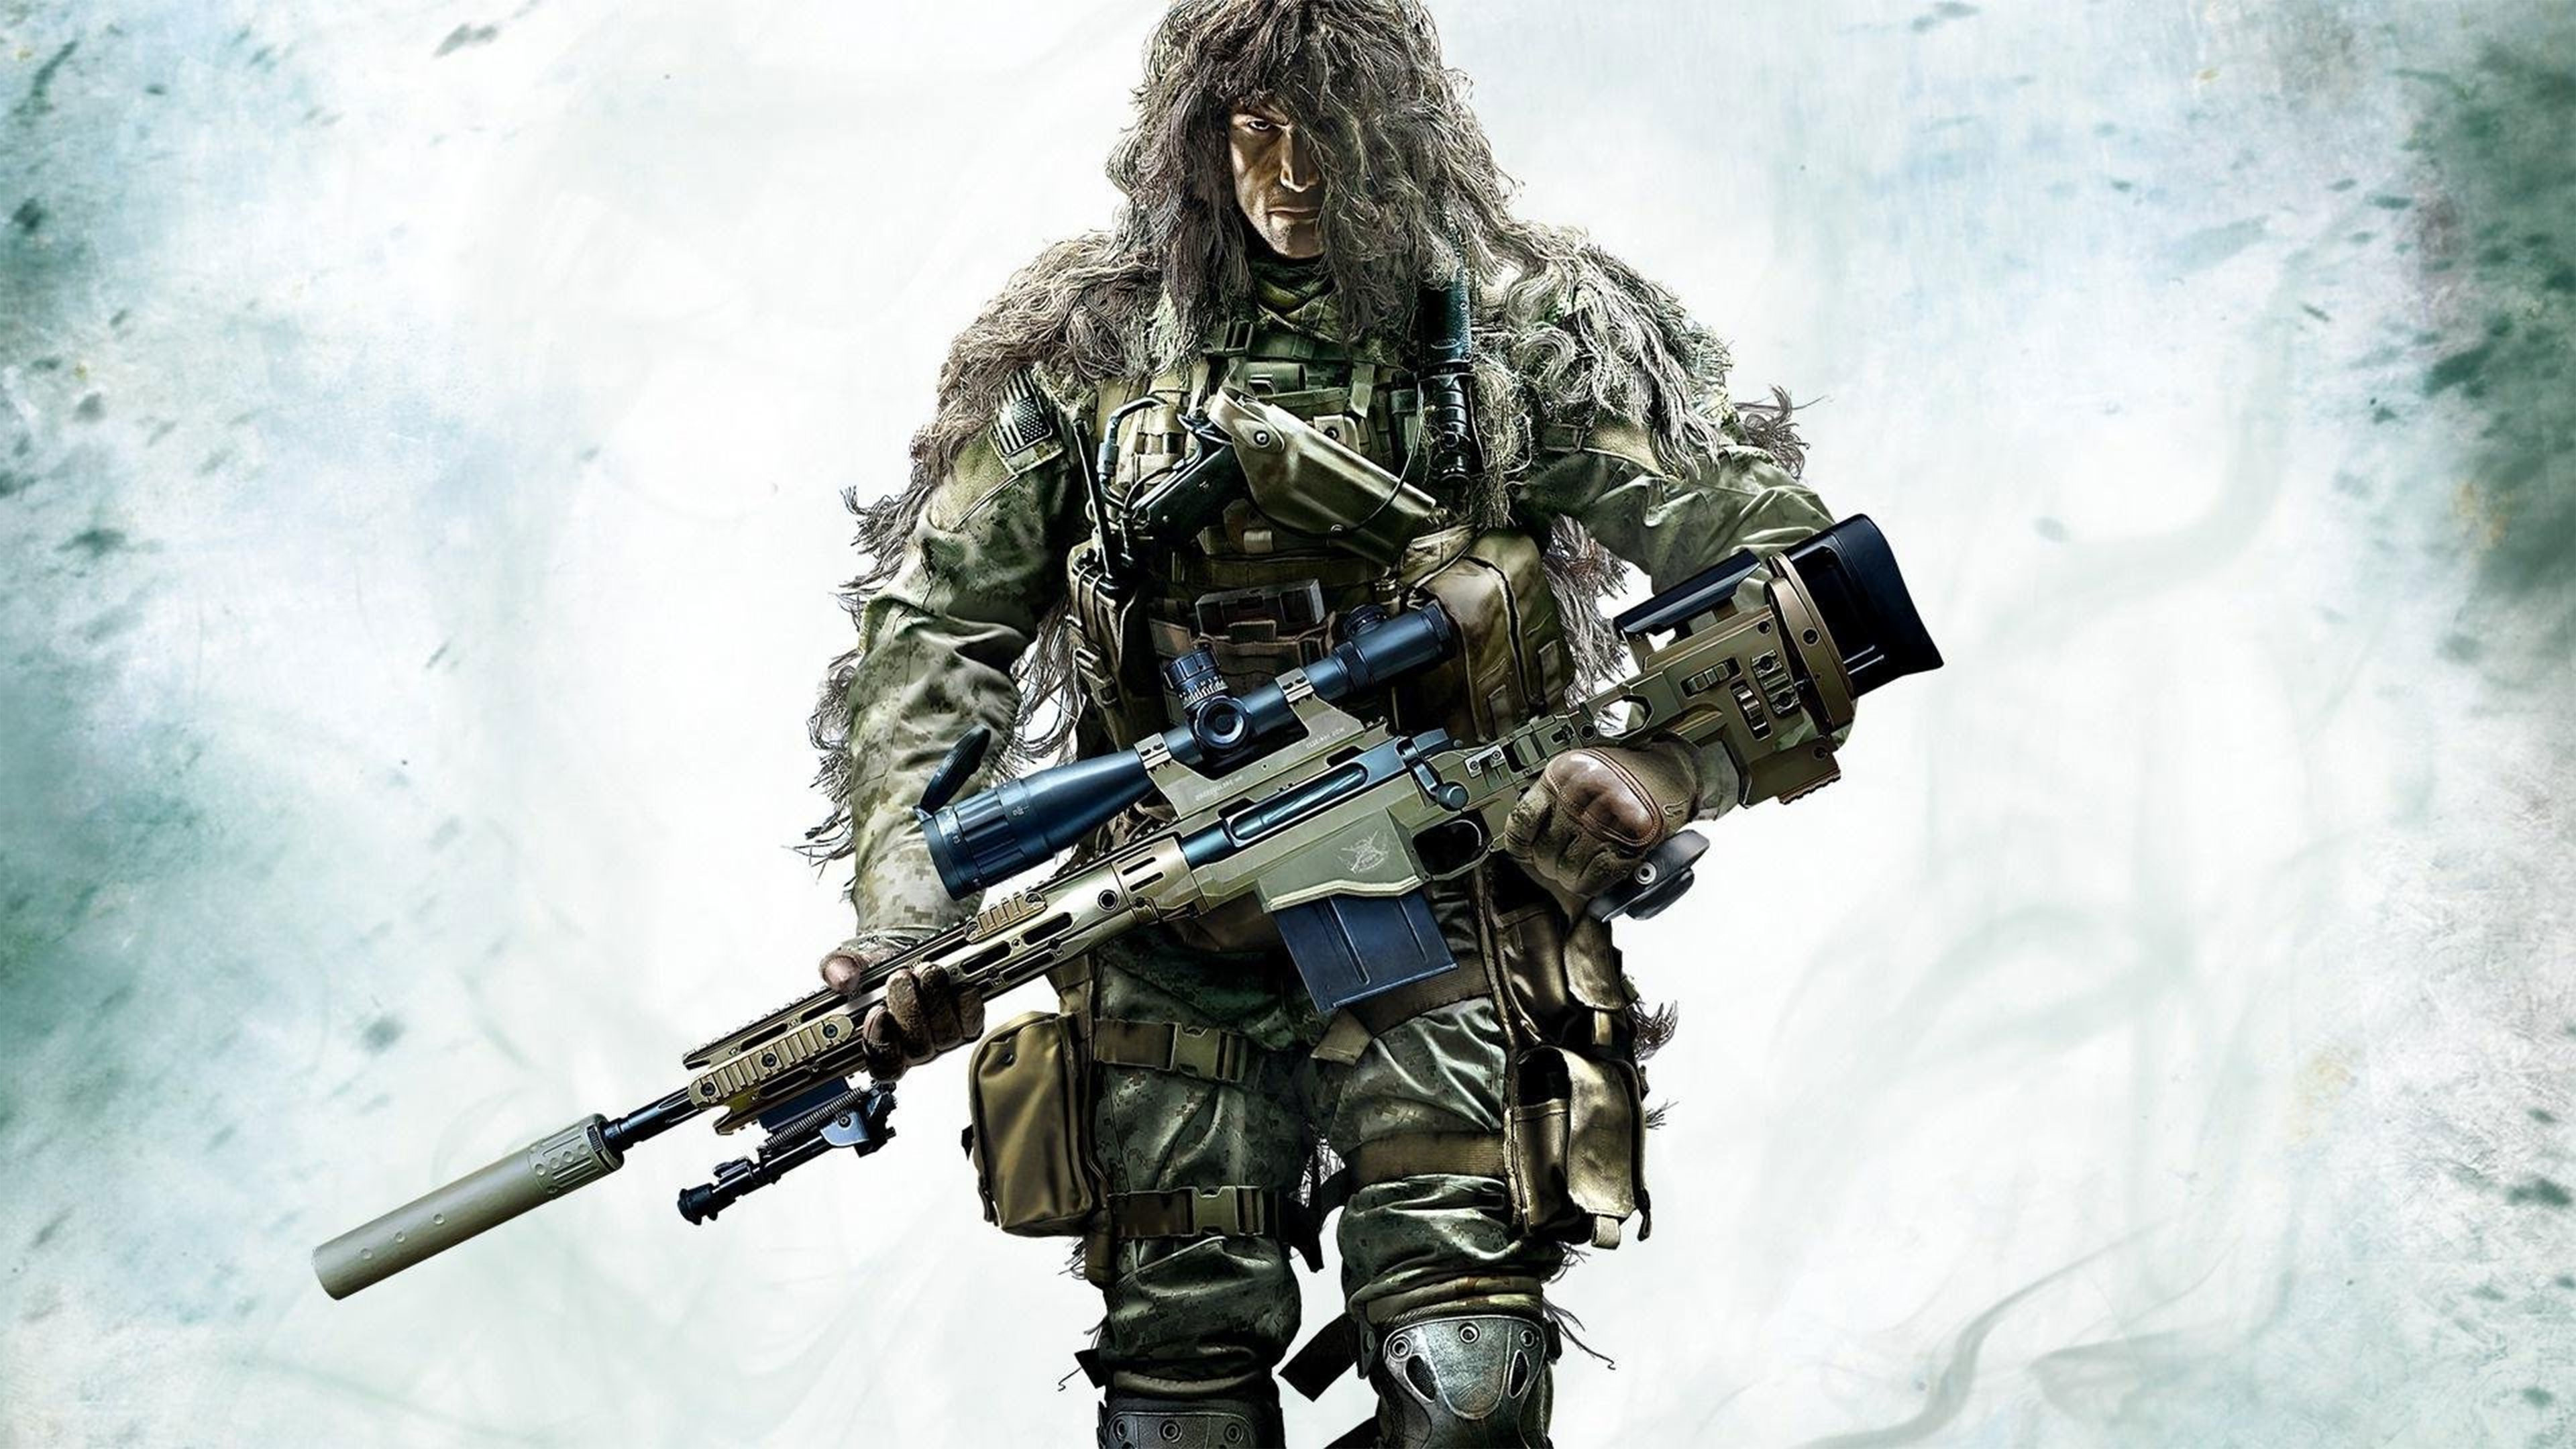 3840x2160 Sniper Ghost Warrior 3 4K Wallpaper ...